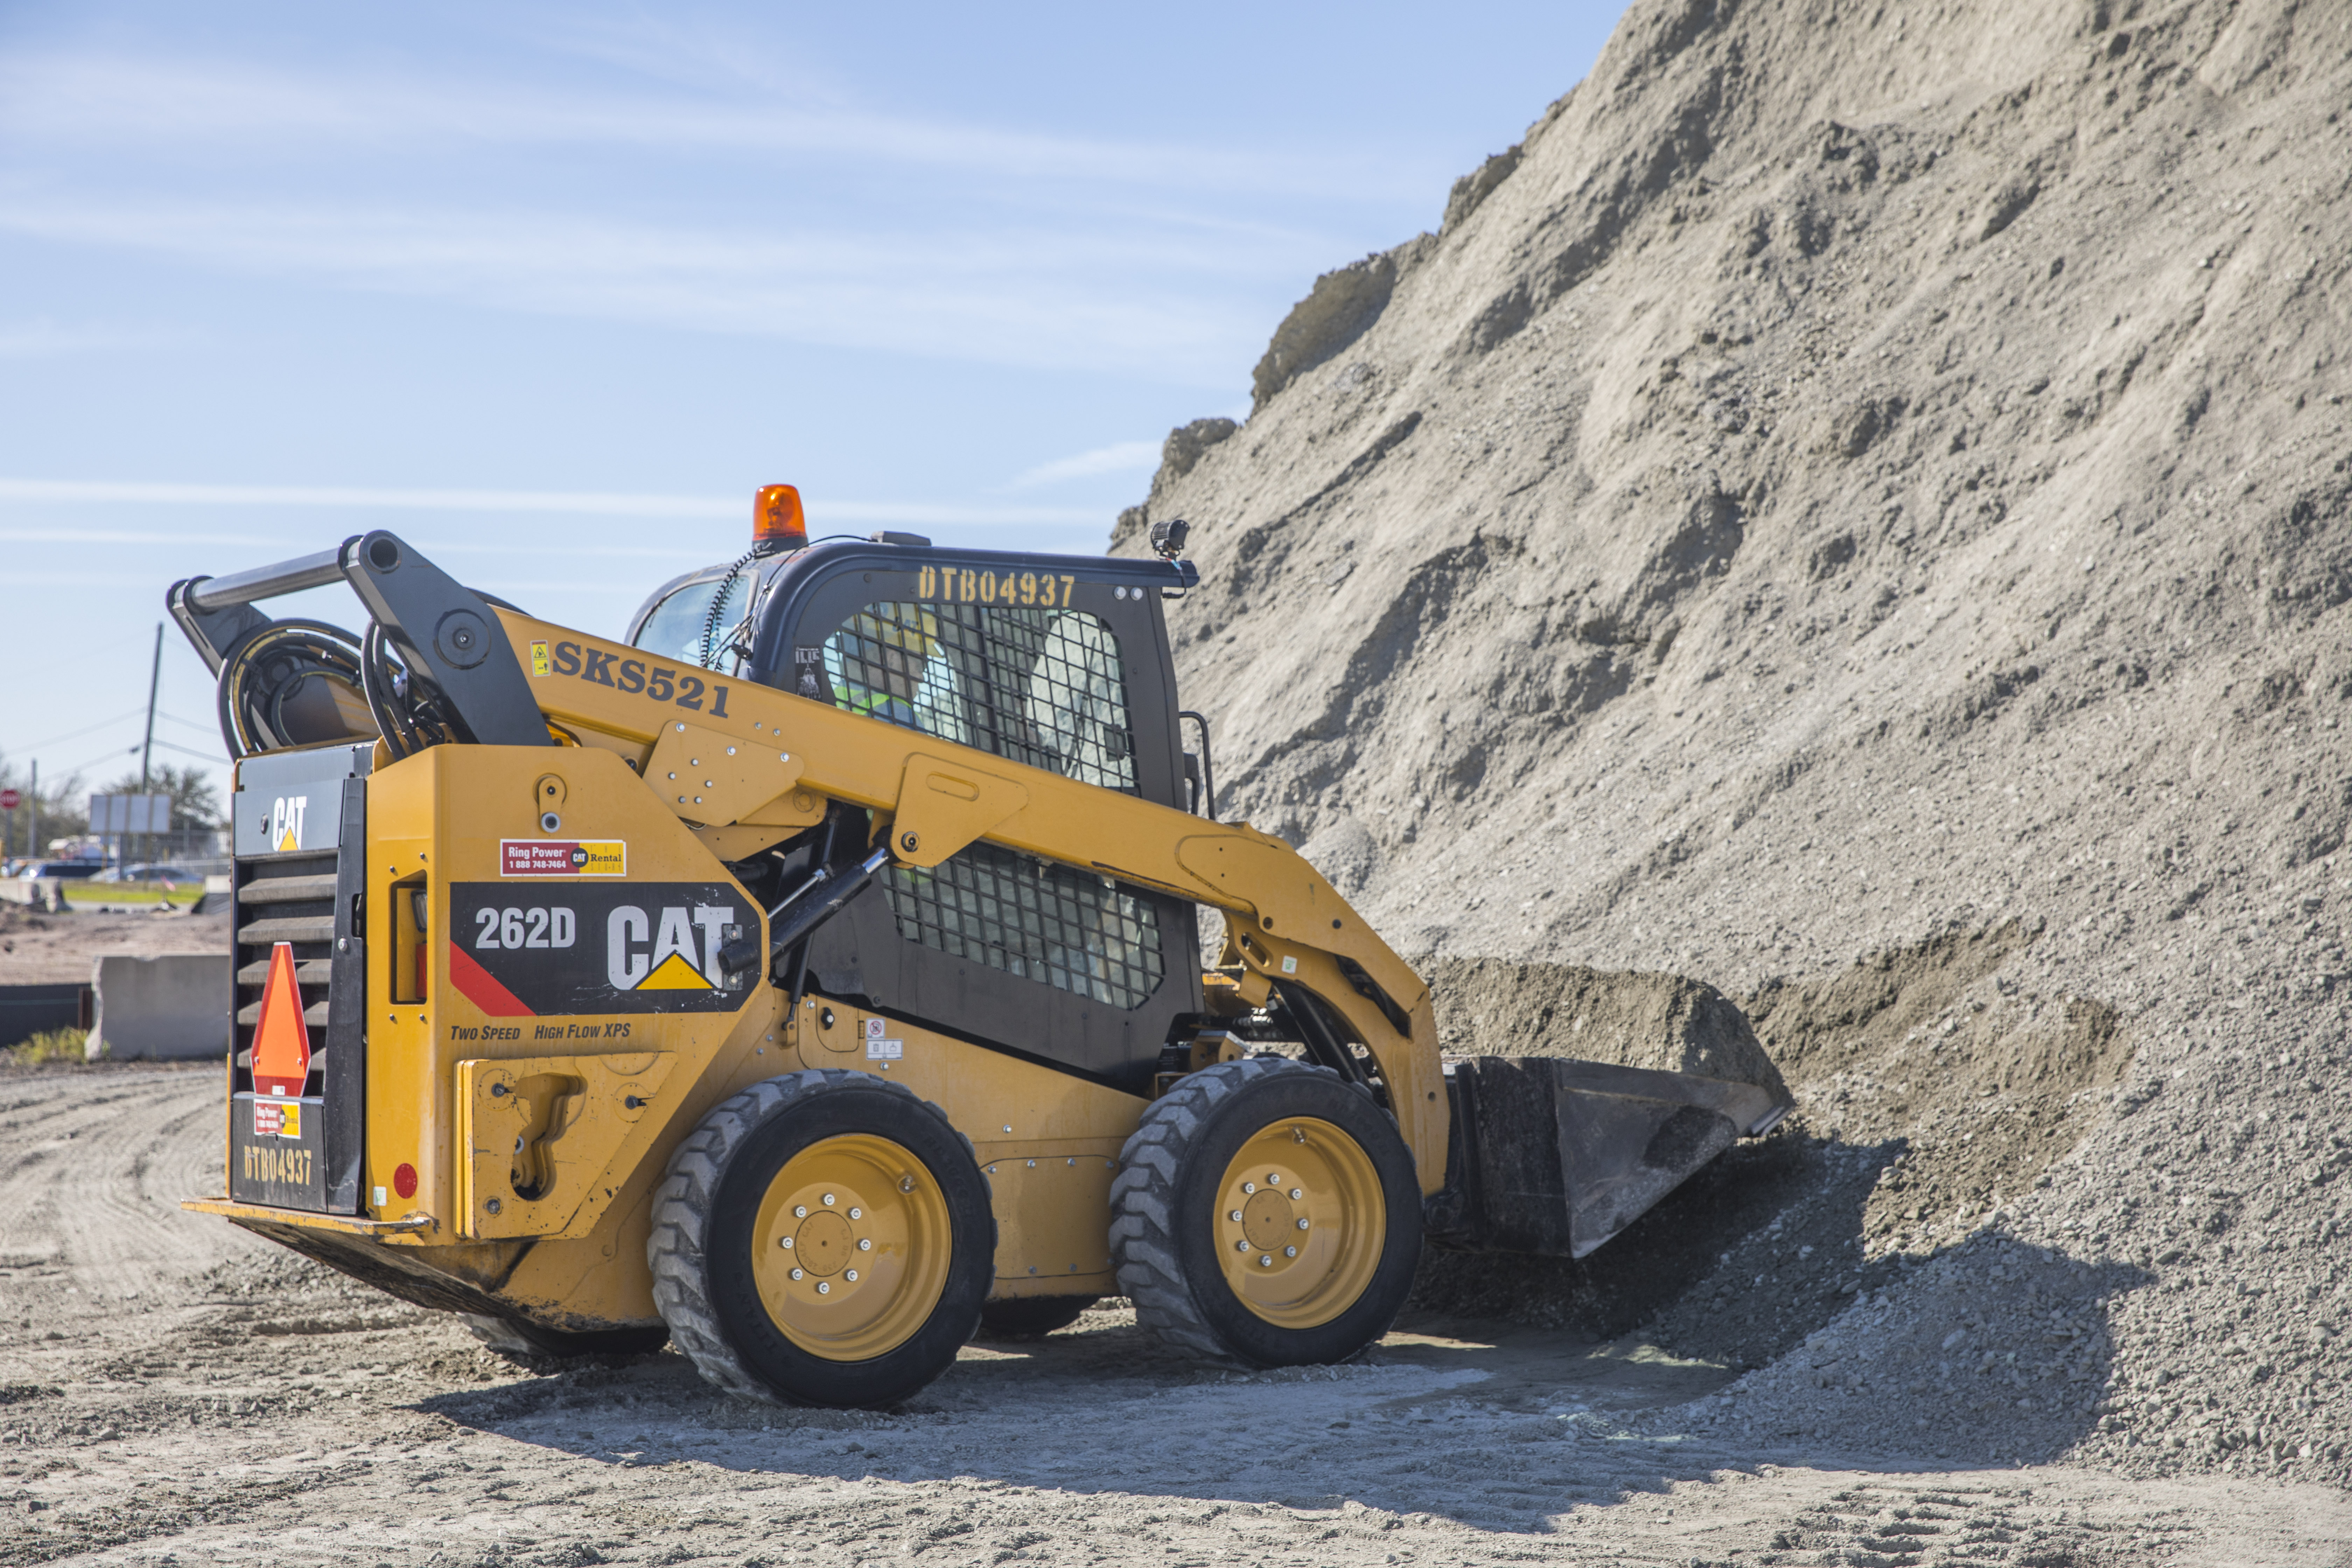 Radials, Specialization and Technology: What's Ahead for Small OTR Tires